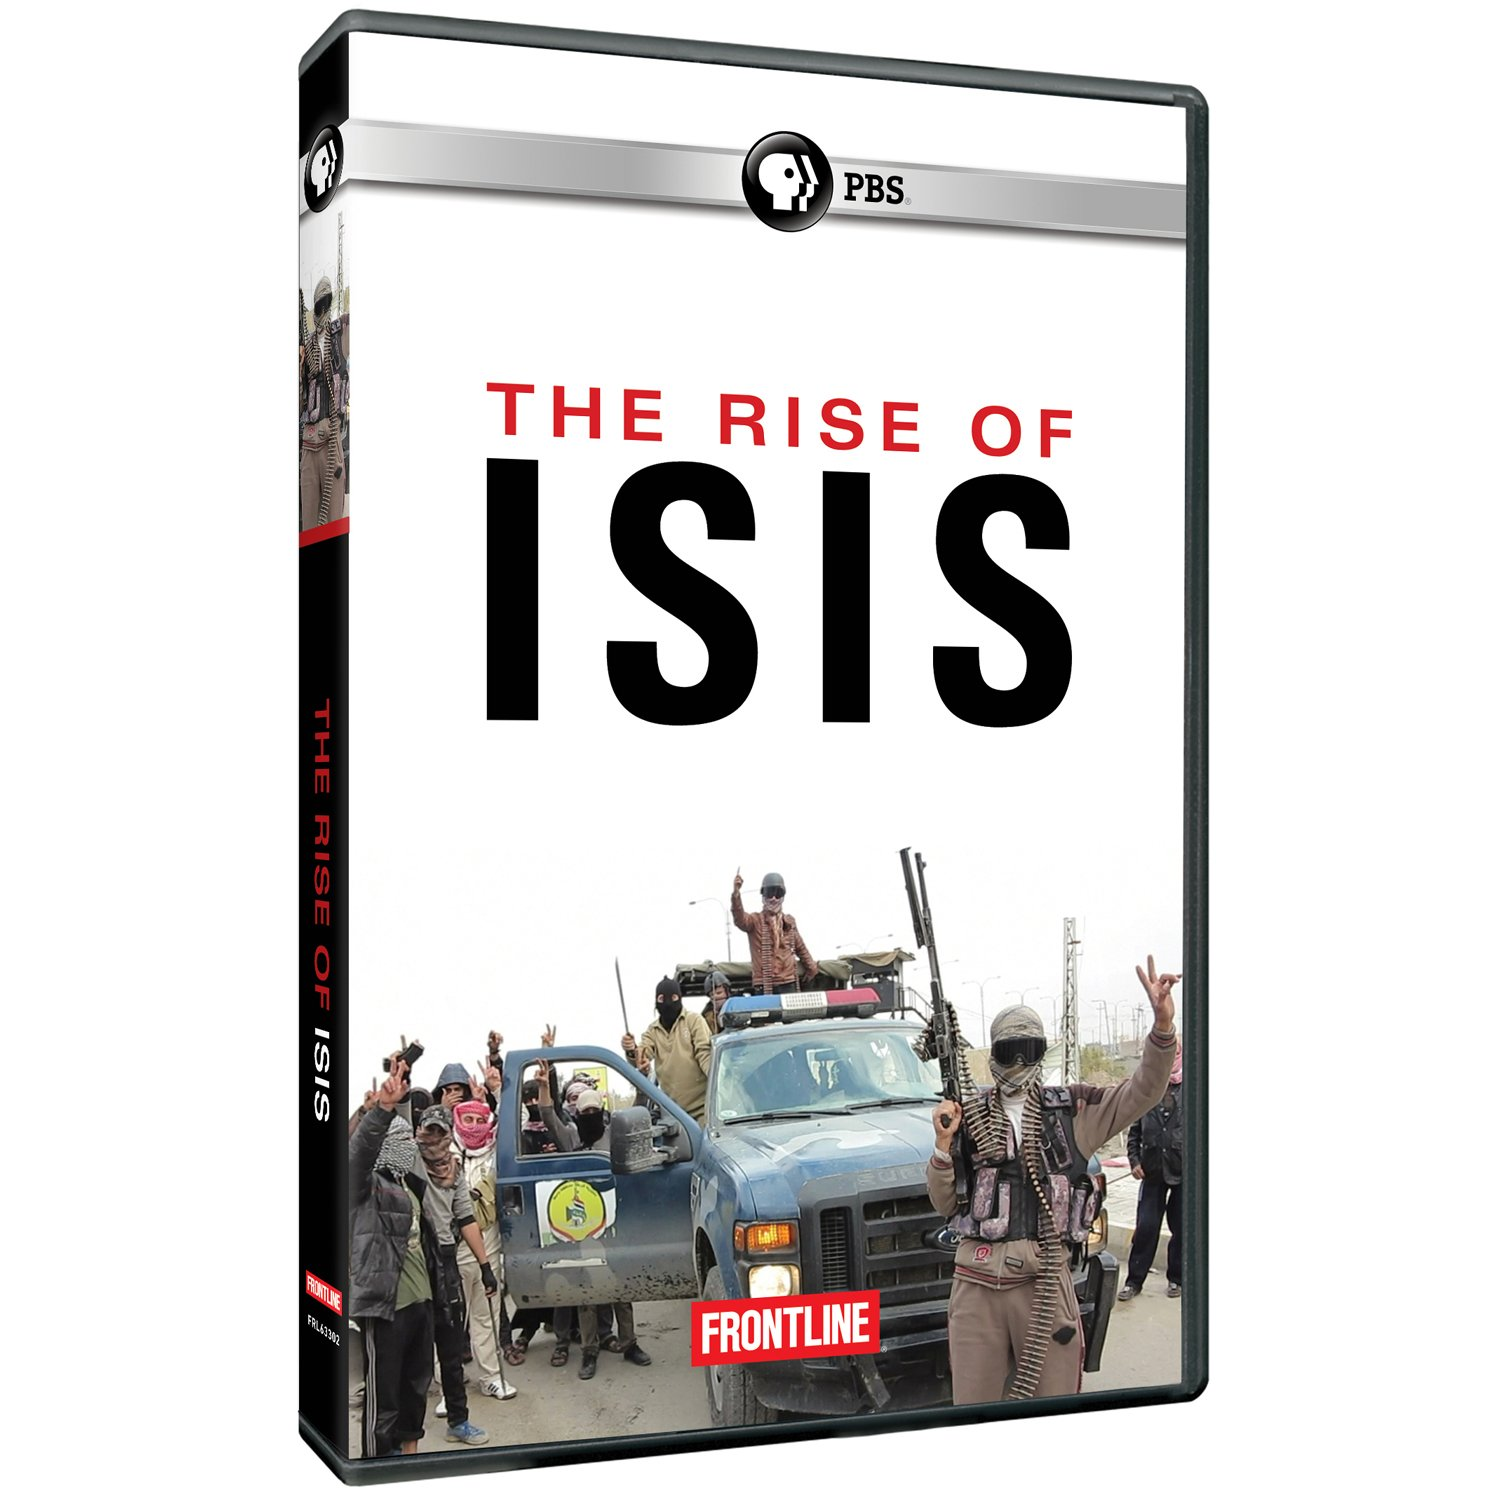 Frontline: The Rise of Max 50% OFF Isis Fashionable the